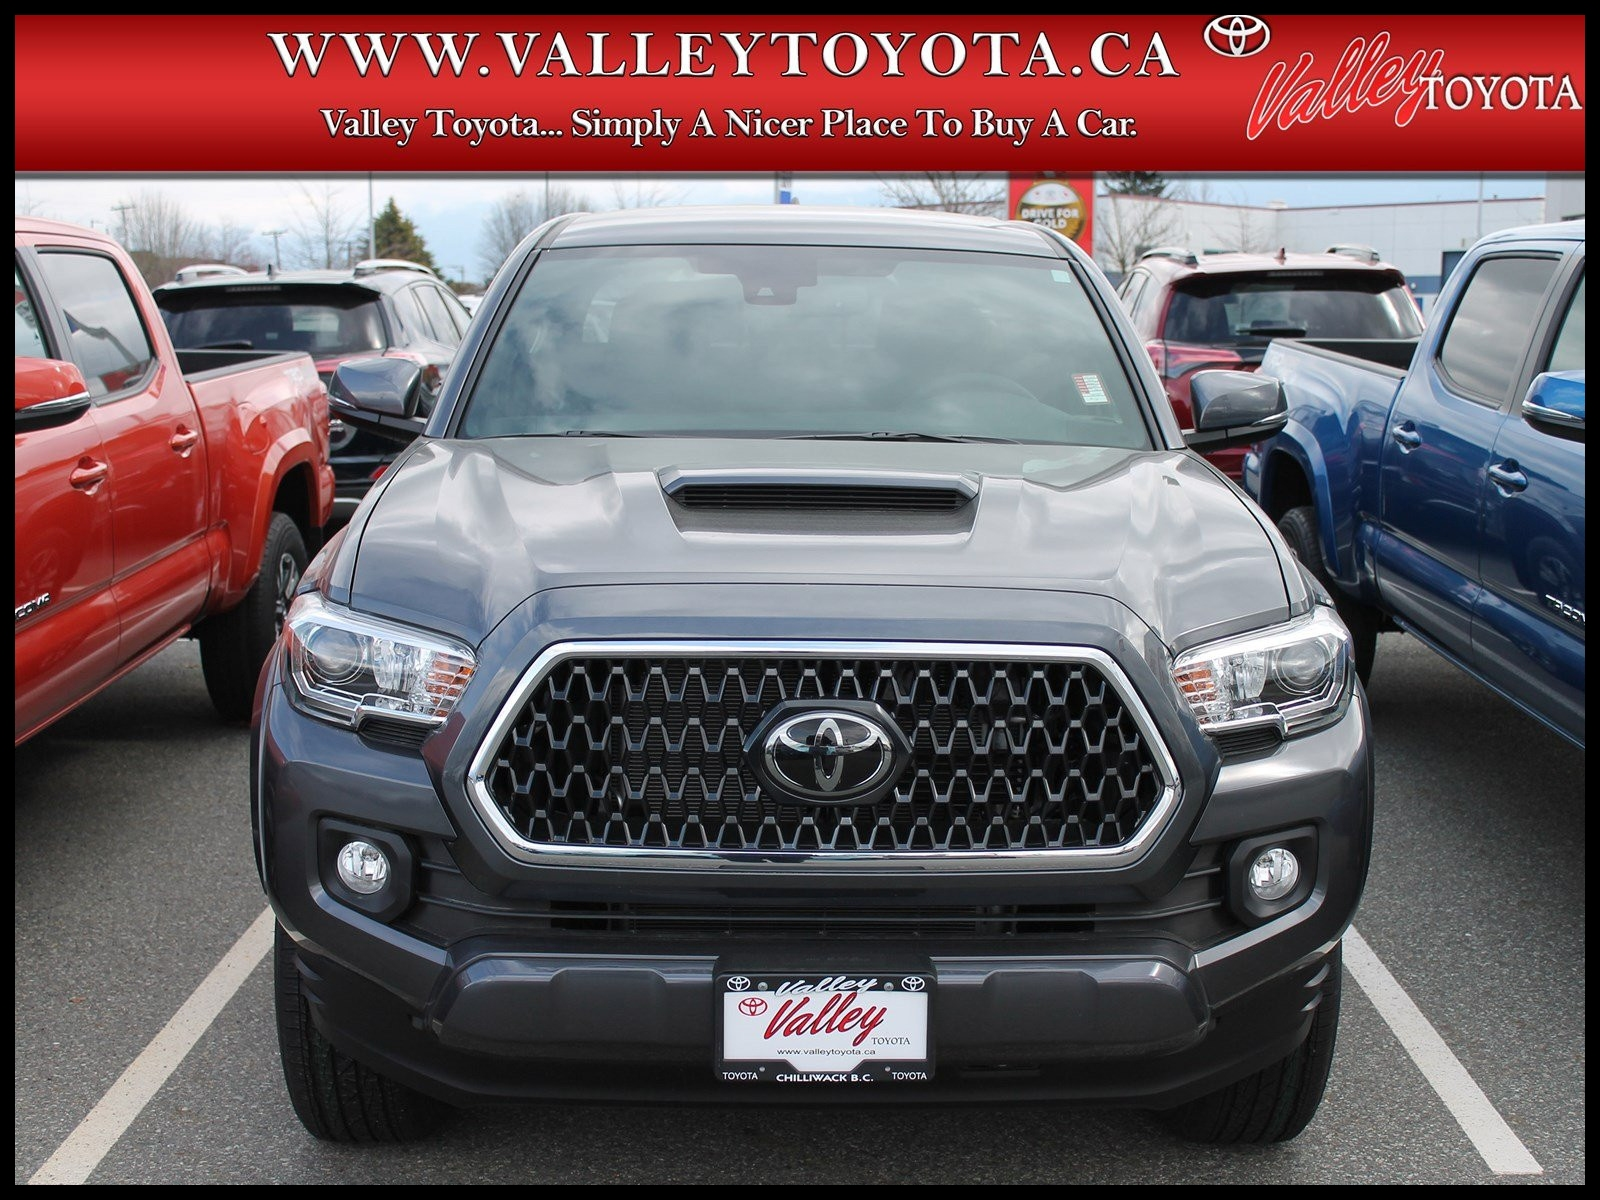 Terrific Moreno Valley toyota New 2018 toyota Ta A Trd F Road Double Cab Pickup In